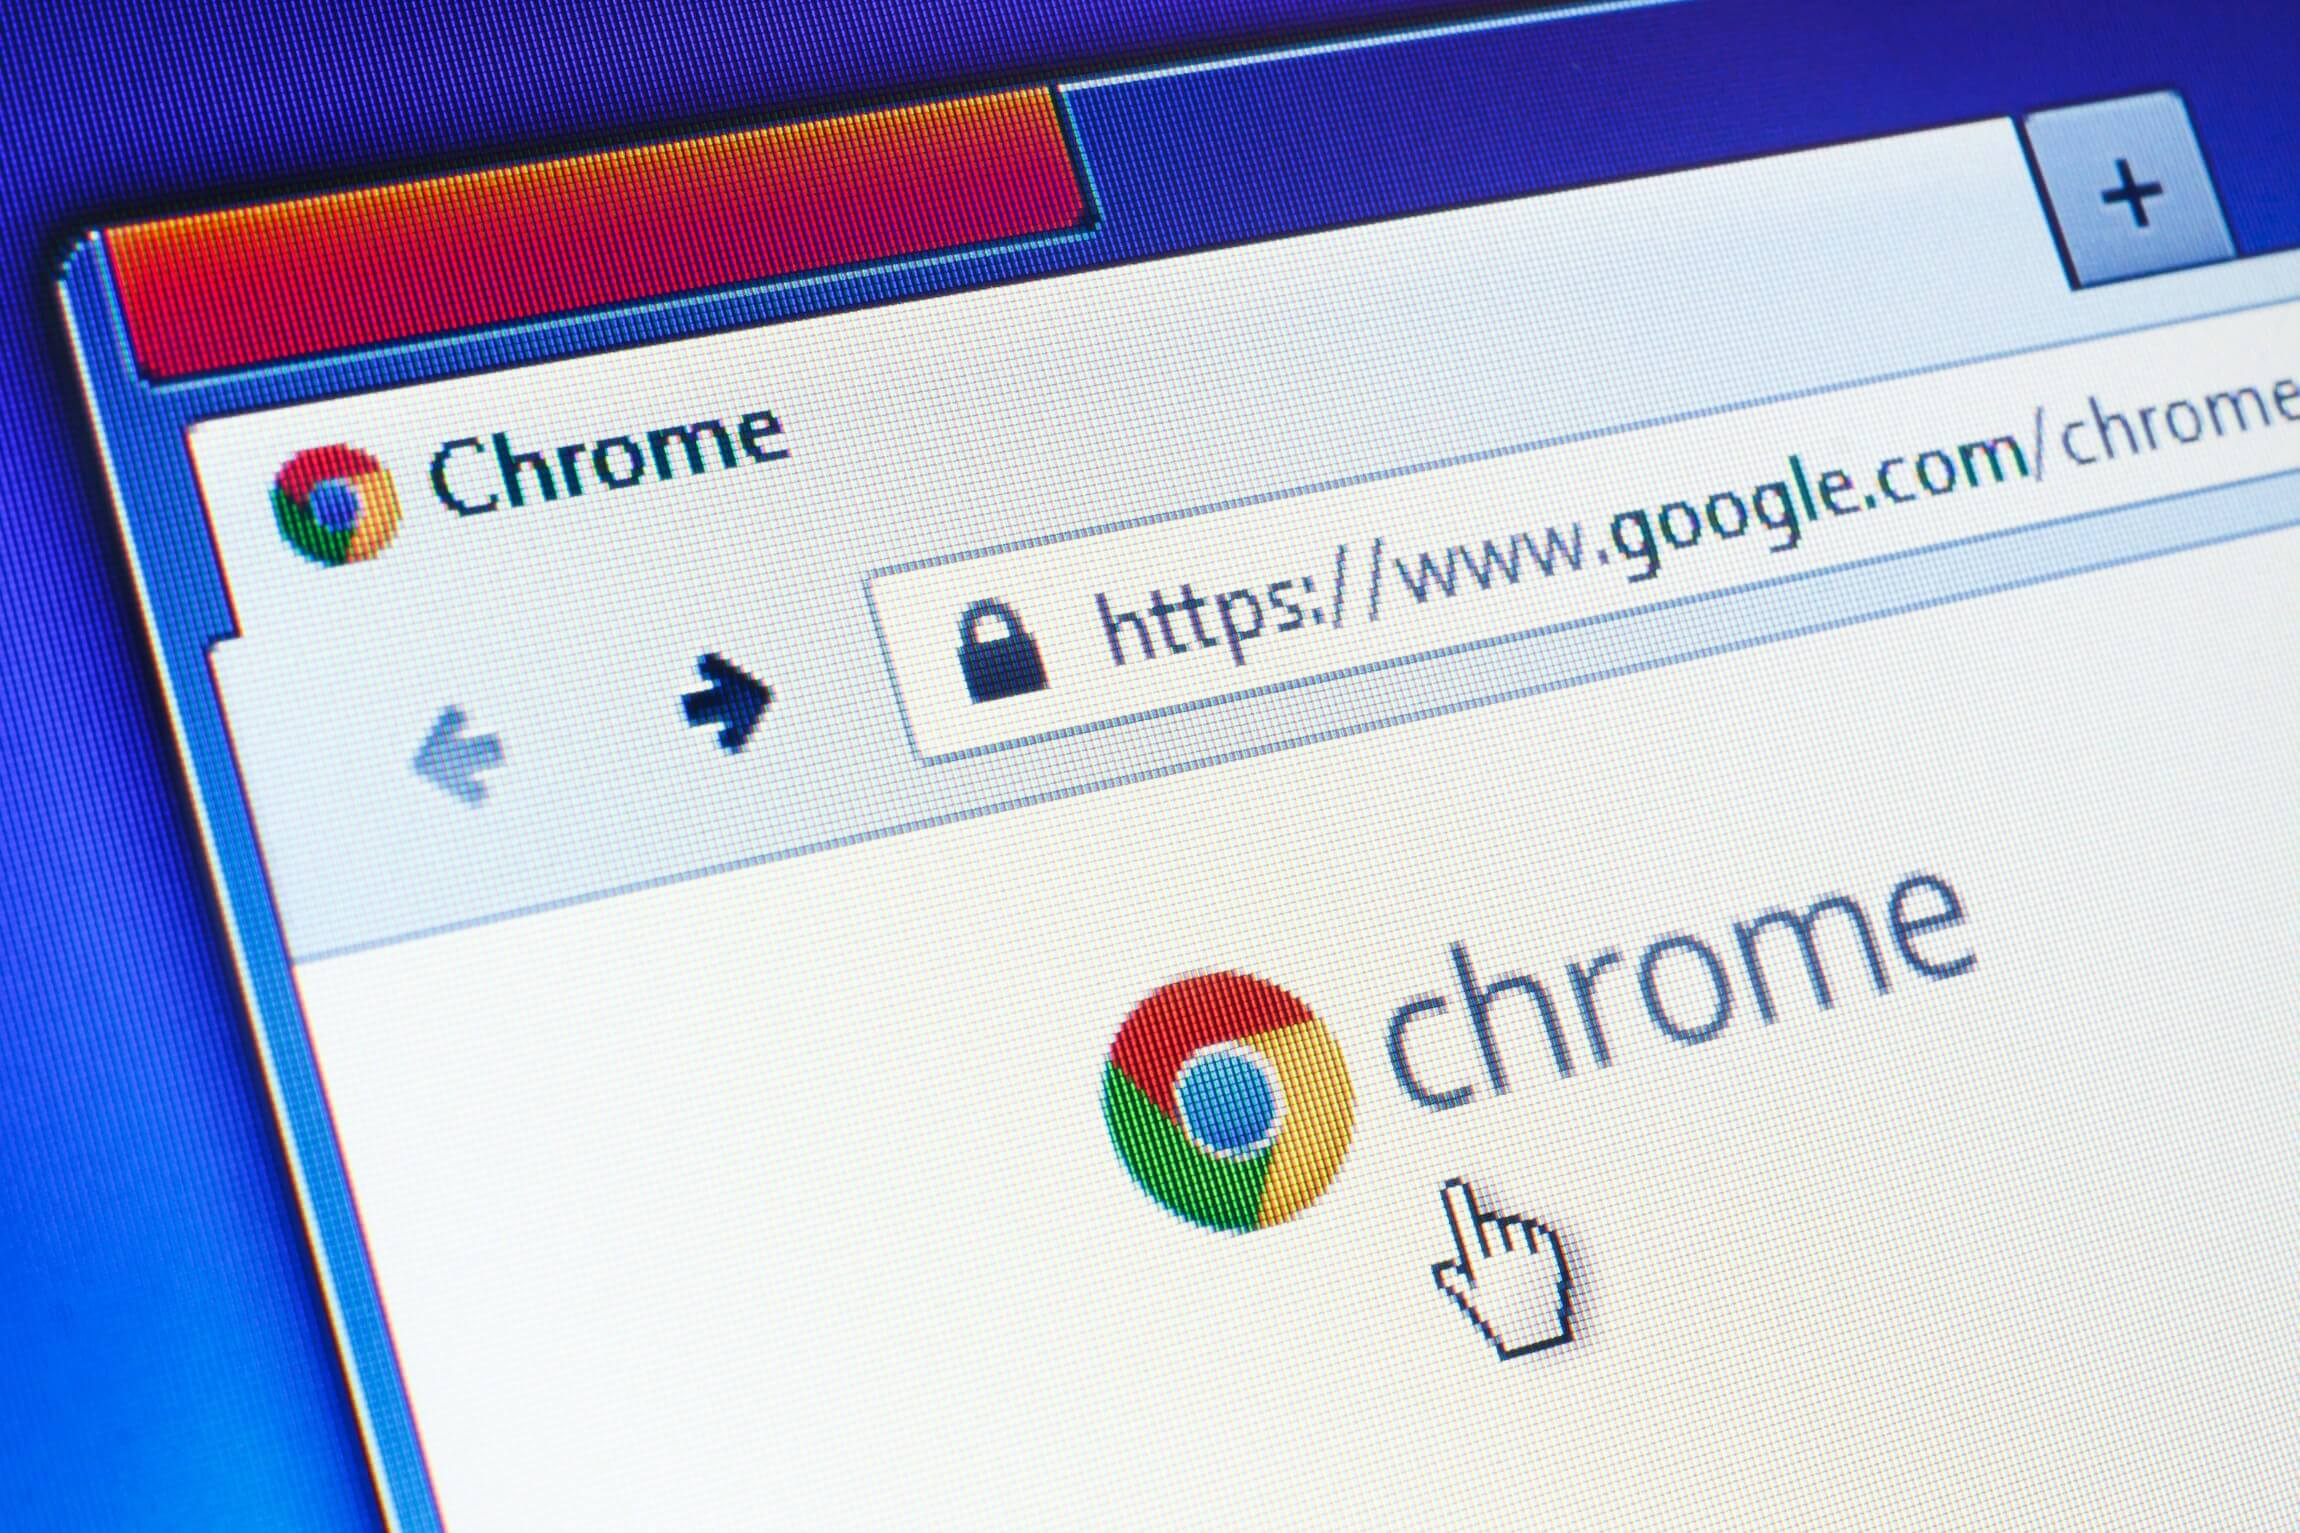 Chrome 79 has better password protection and real-time phishing warnings